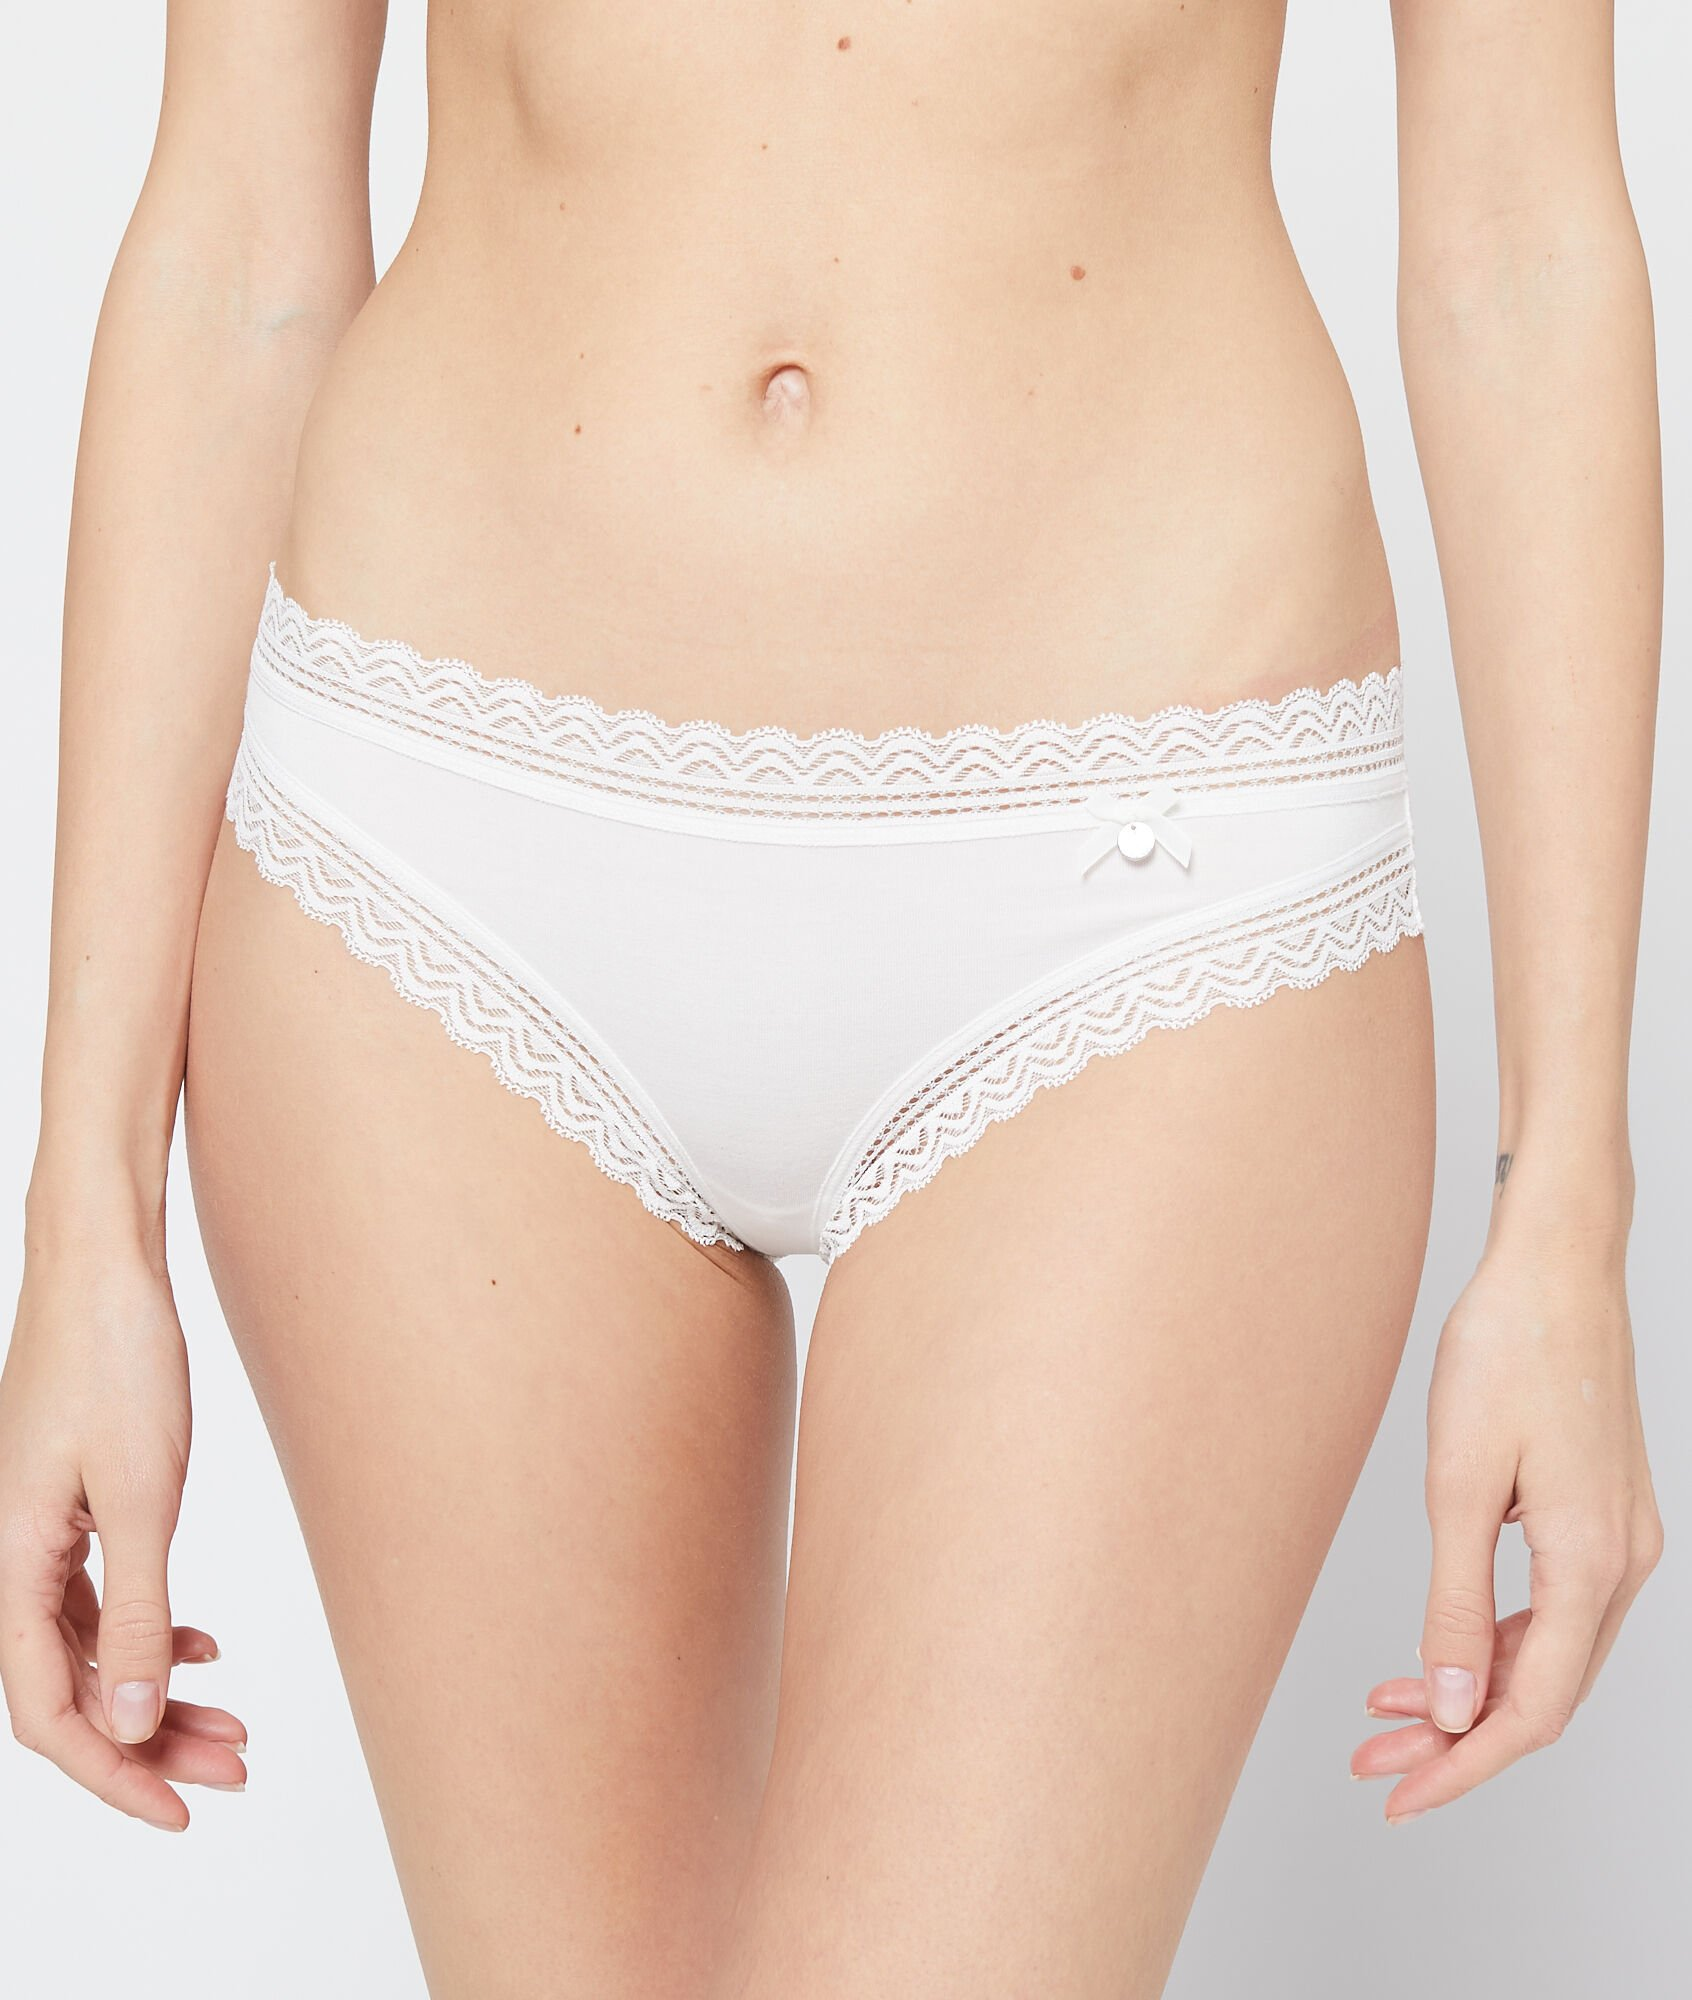 AMOUR Culotte 90% modal, bords dentelle